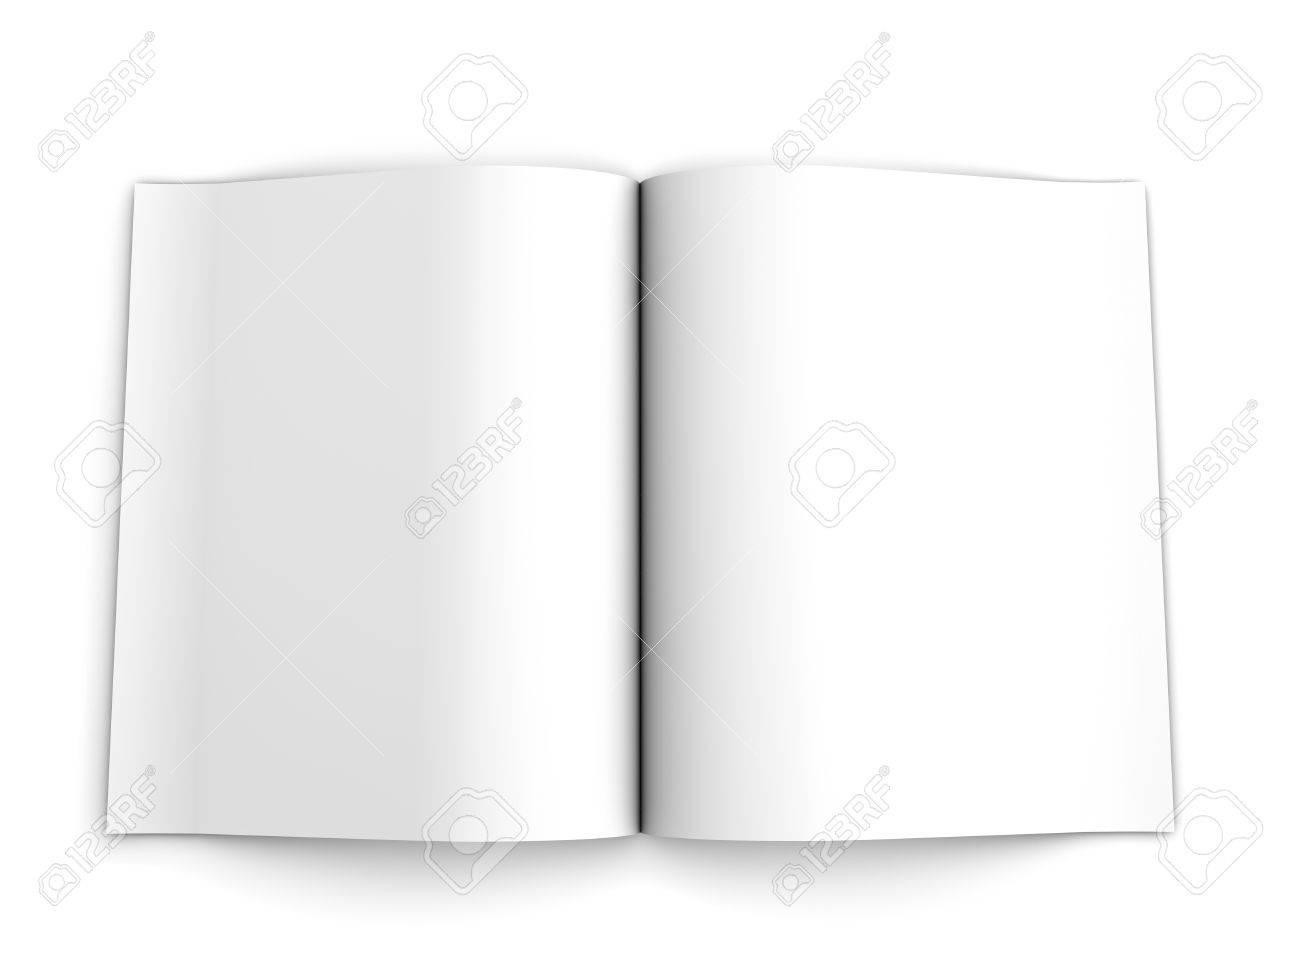 Blank Opened Advertising Folder Viewed From Top Isolated On White ...